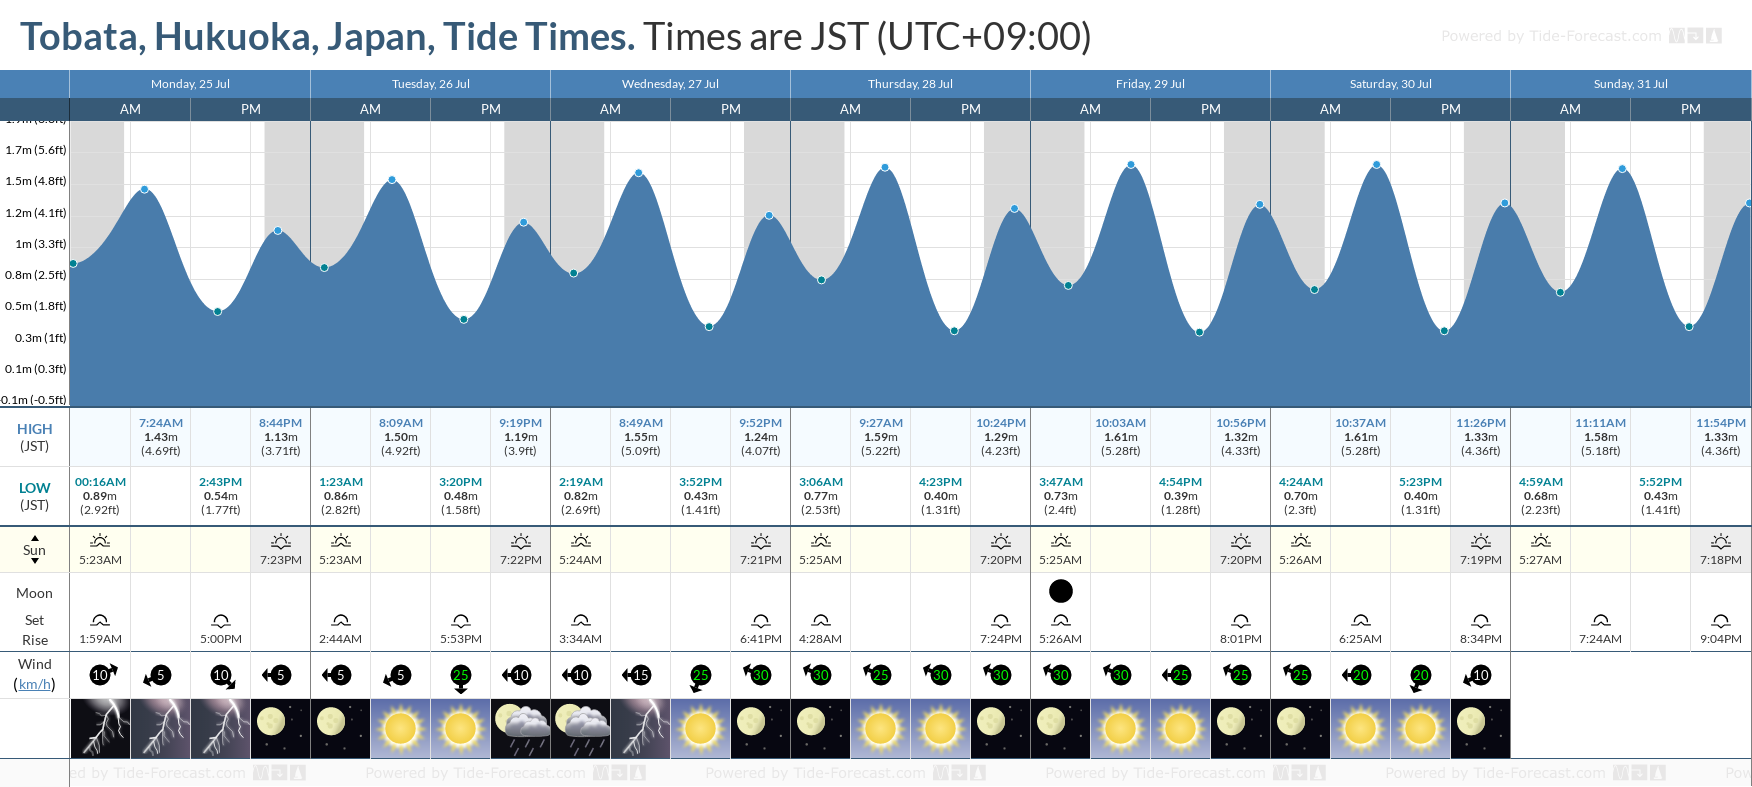 Tobata, Hukuoka, Japan Tide Chart including high and low tide tide times for the next 7 days